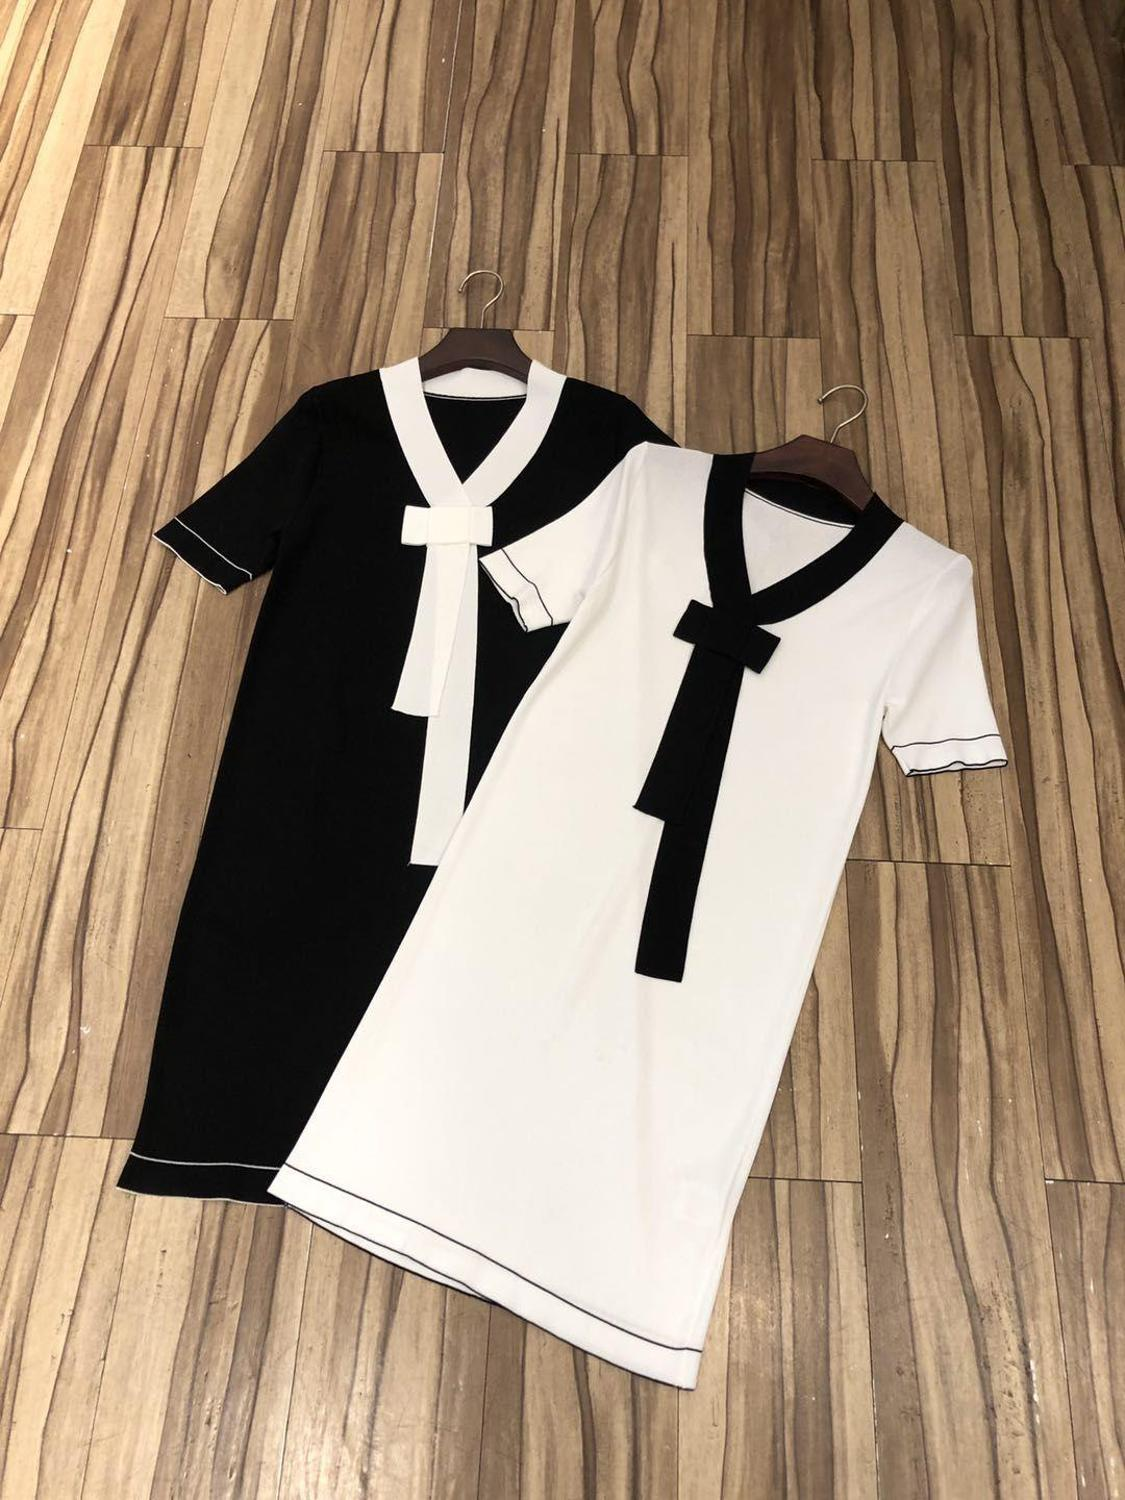 2019 new ladies fashion short sleeved bow tie color dress 0603